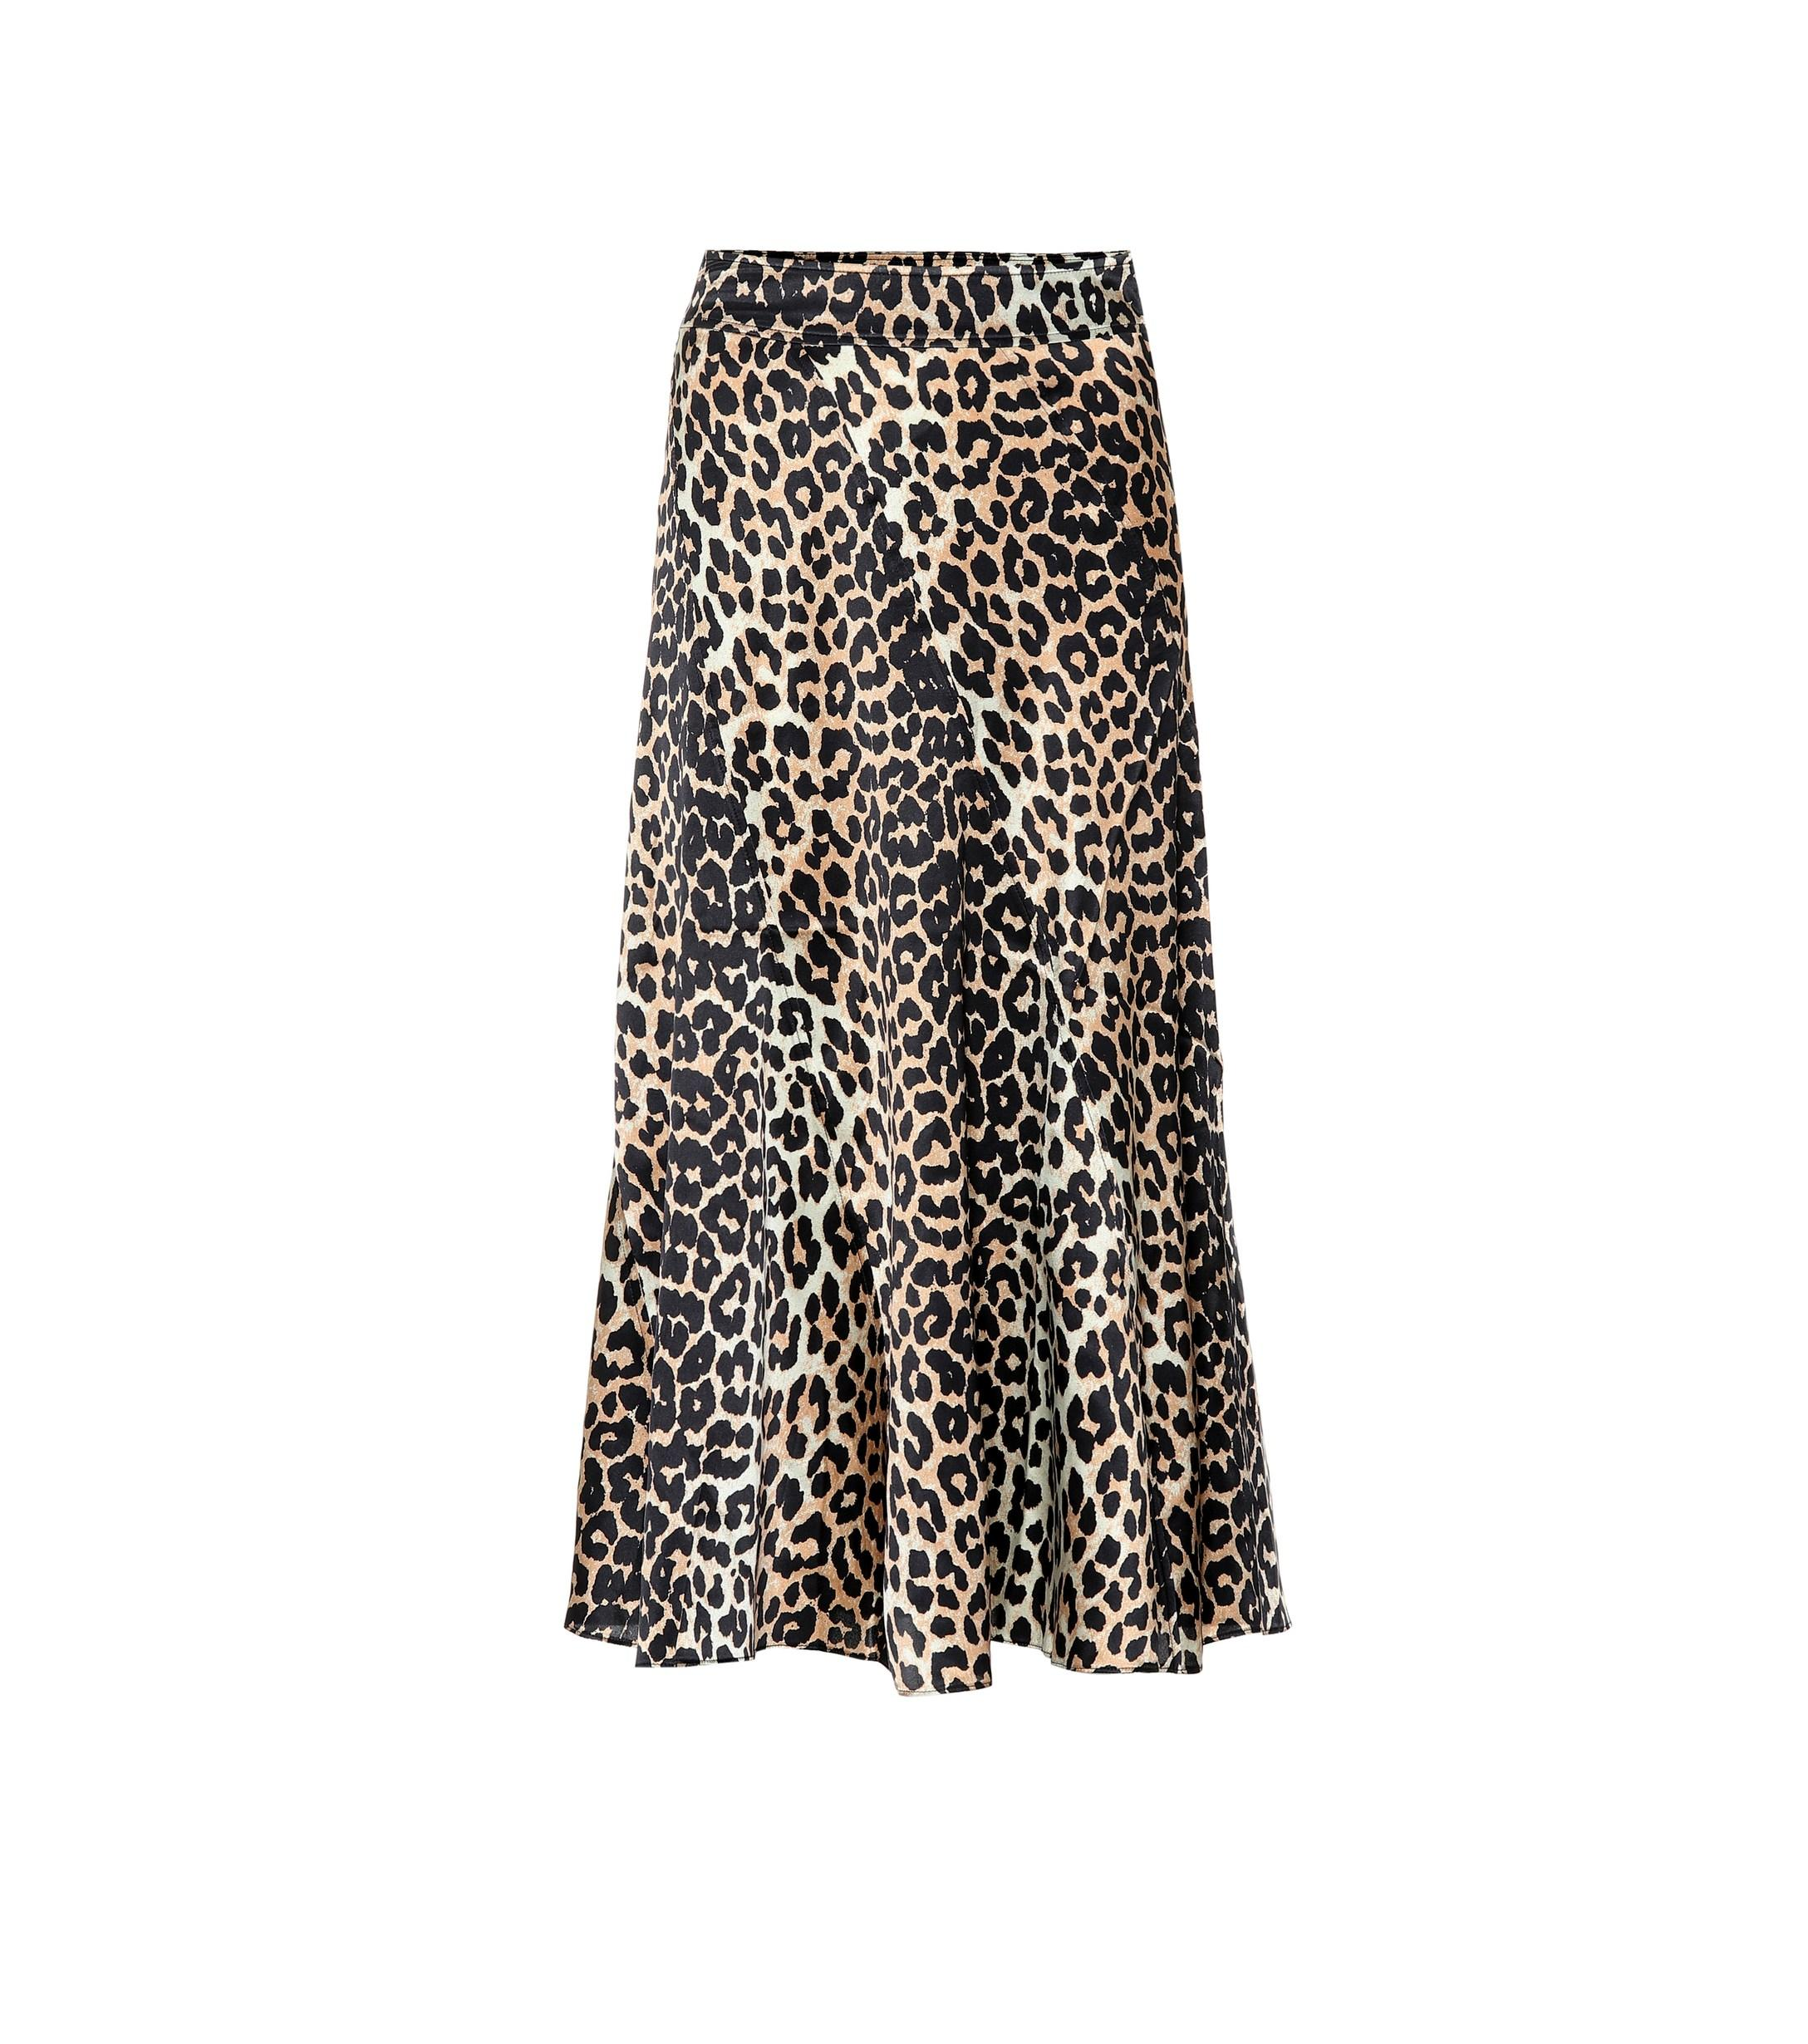 8b333861ac1e Ganni Leopard-printed Silk Midi Skirt in Black - Lyst